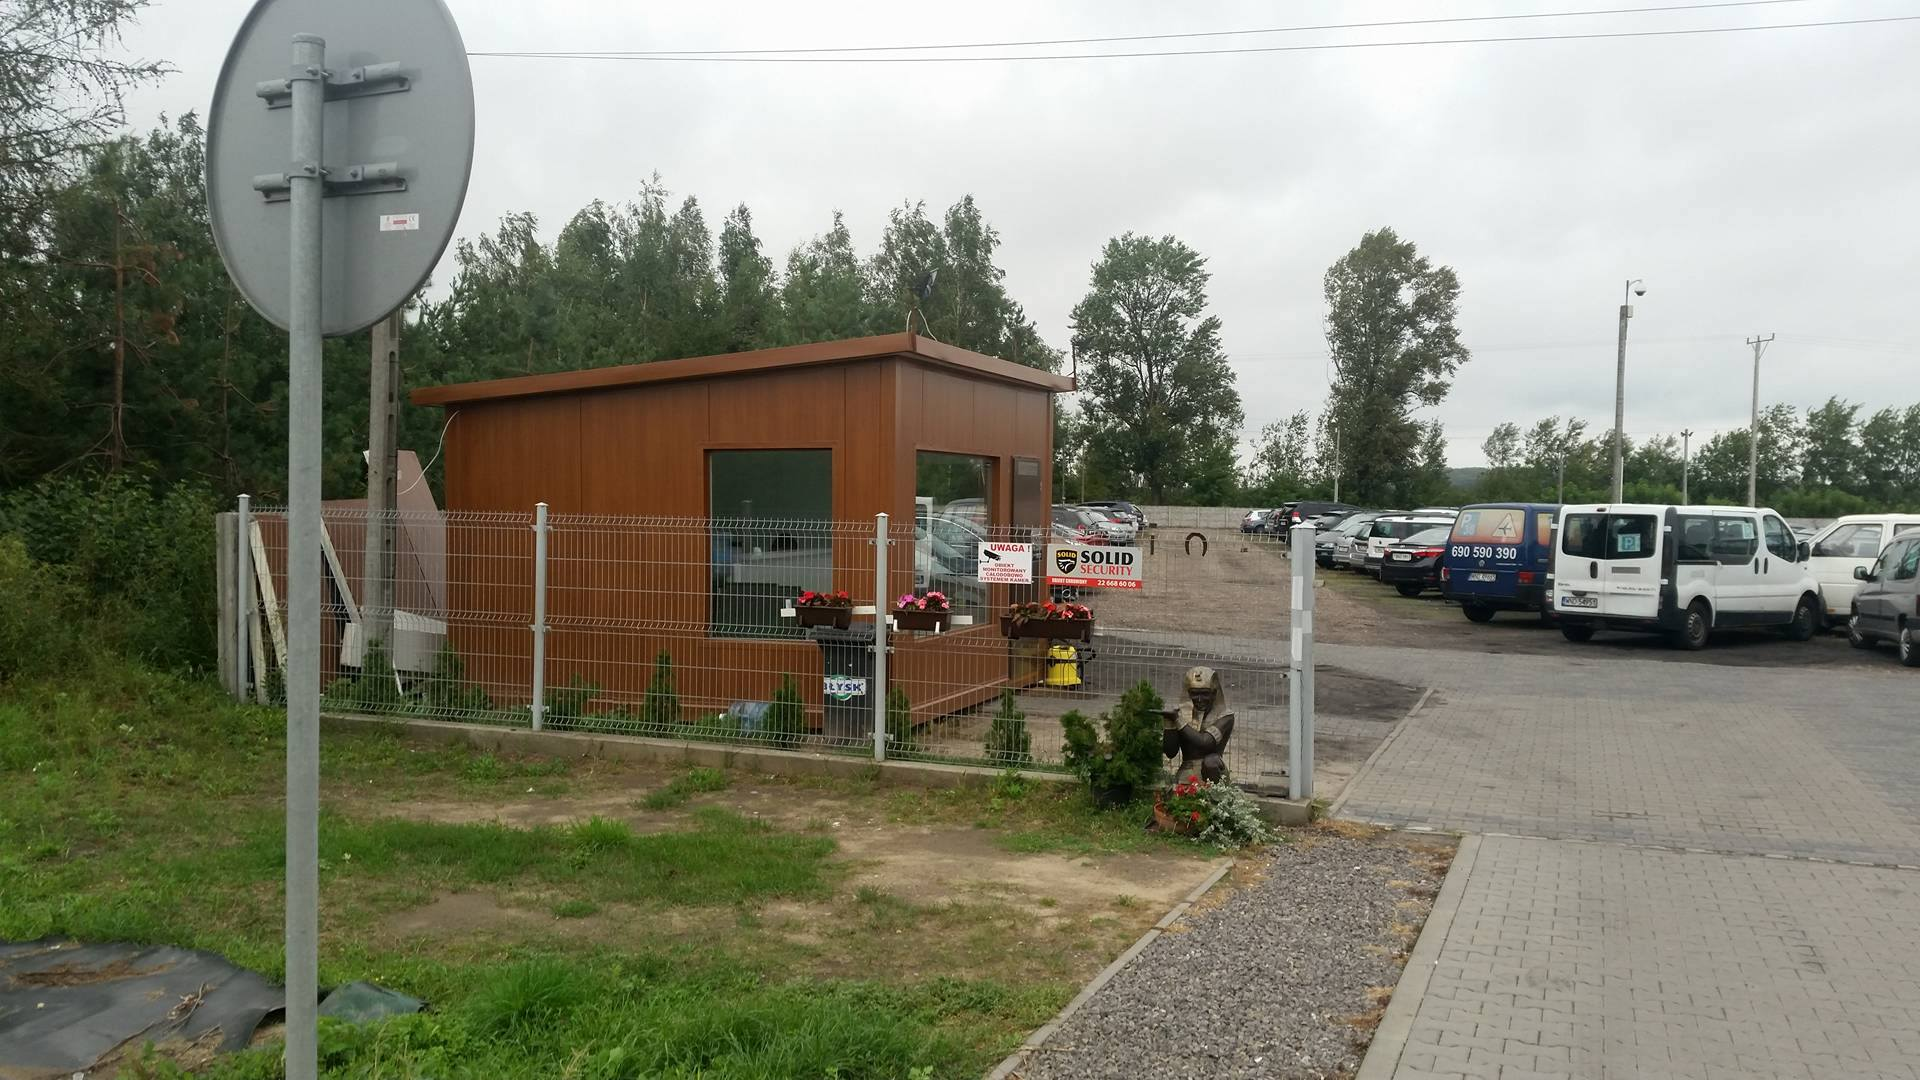 Widok na parking P38 wjazd